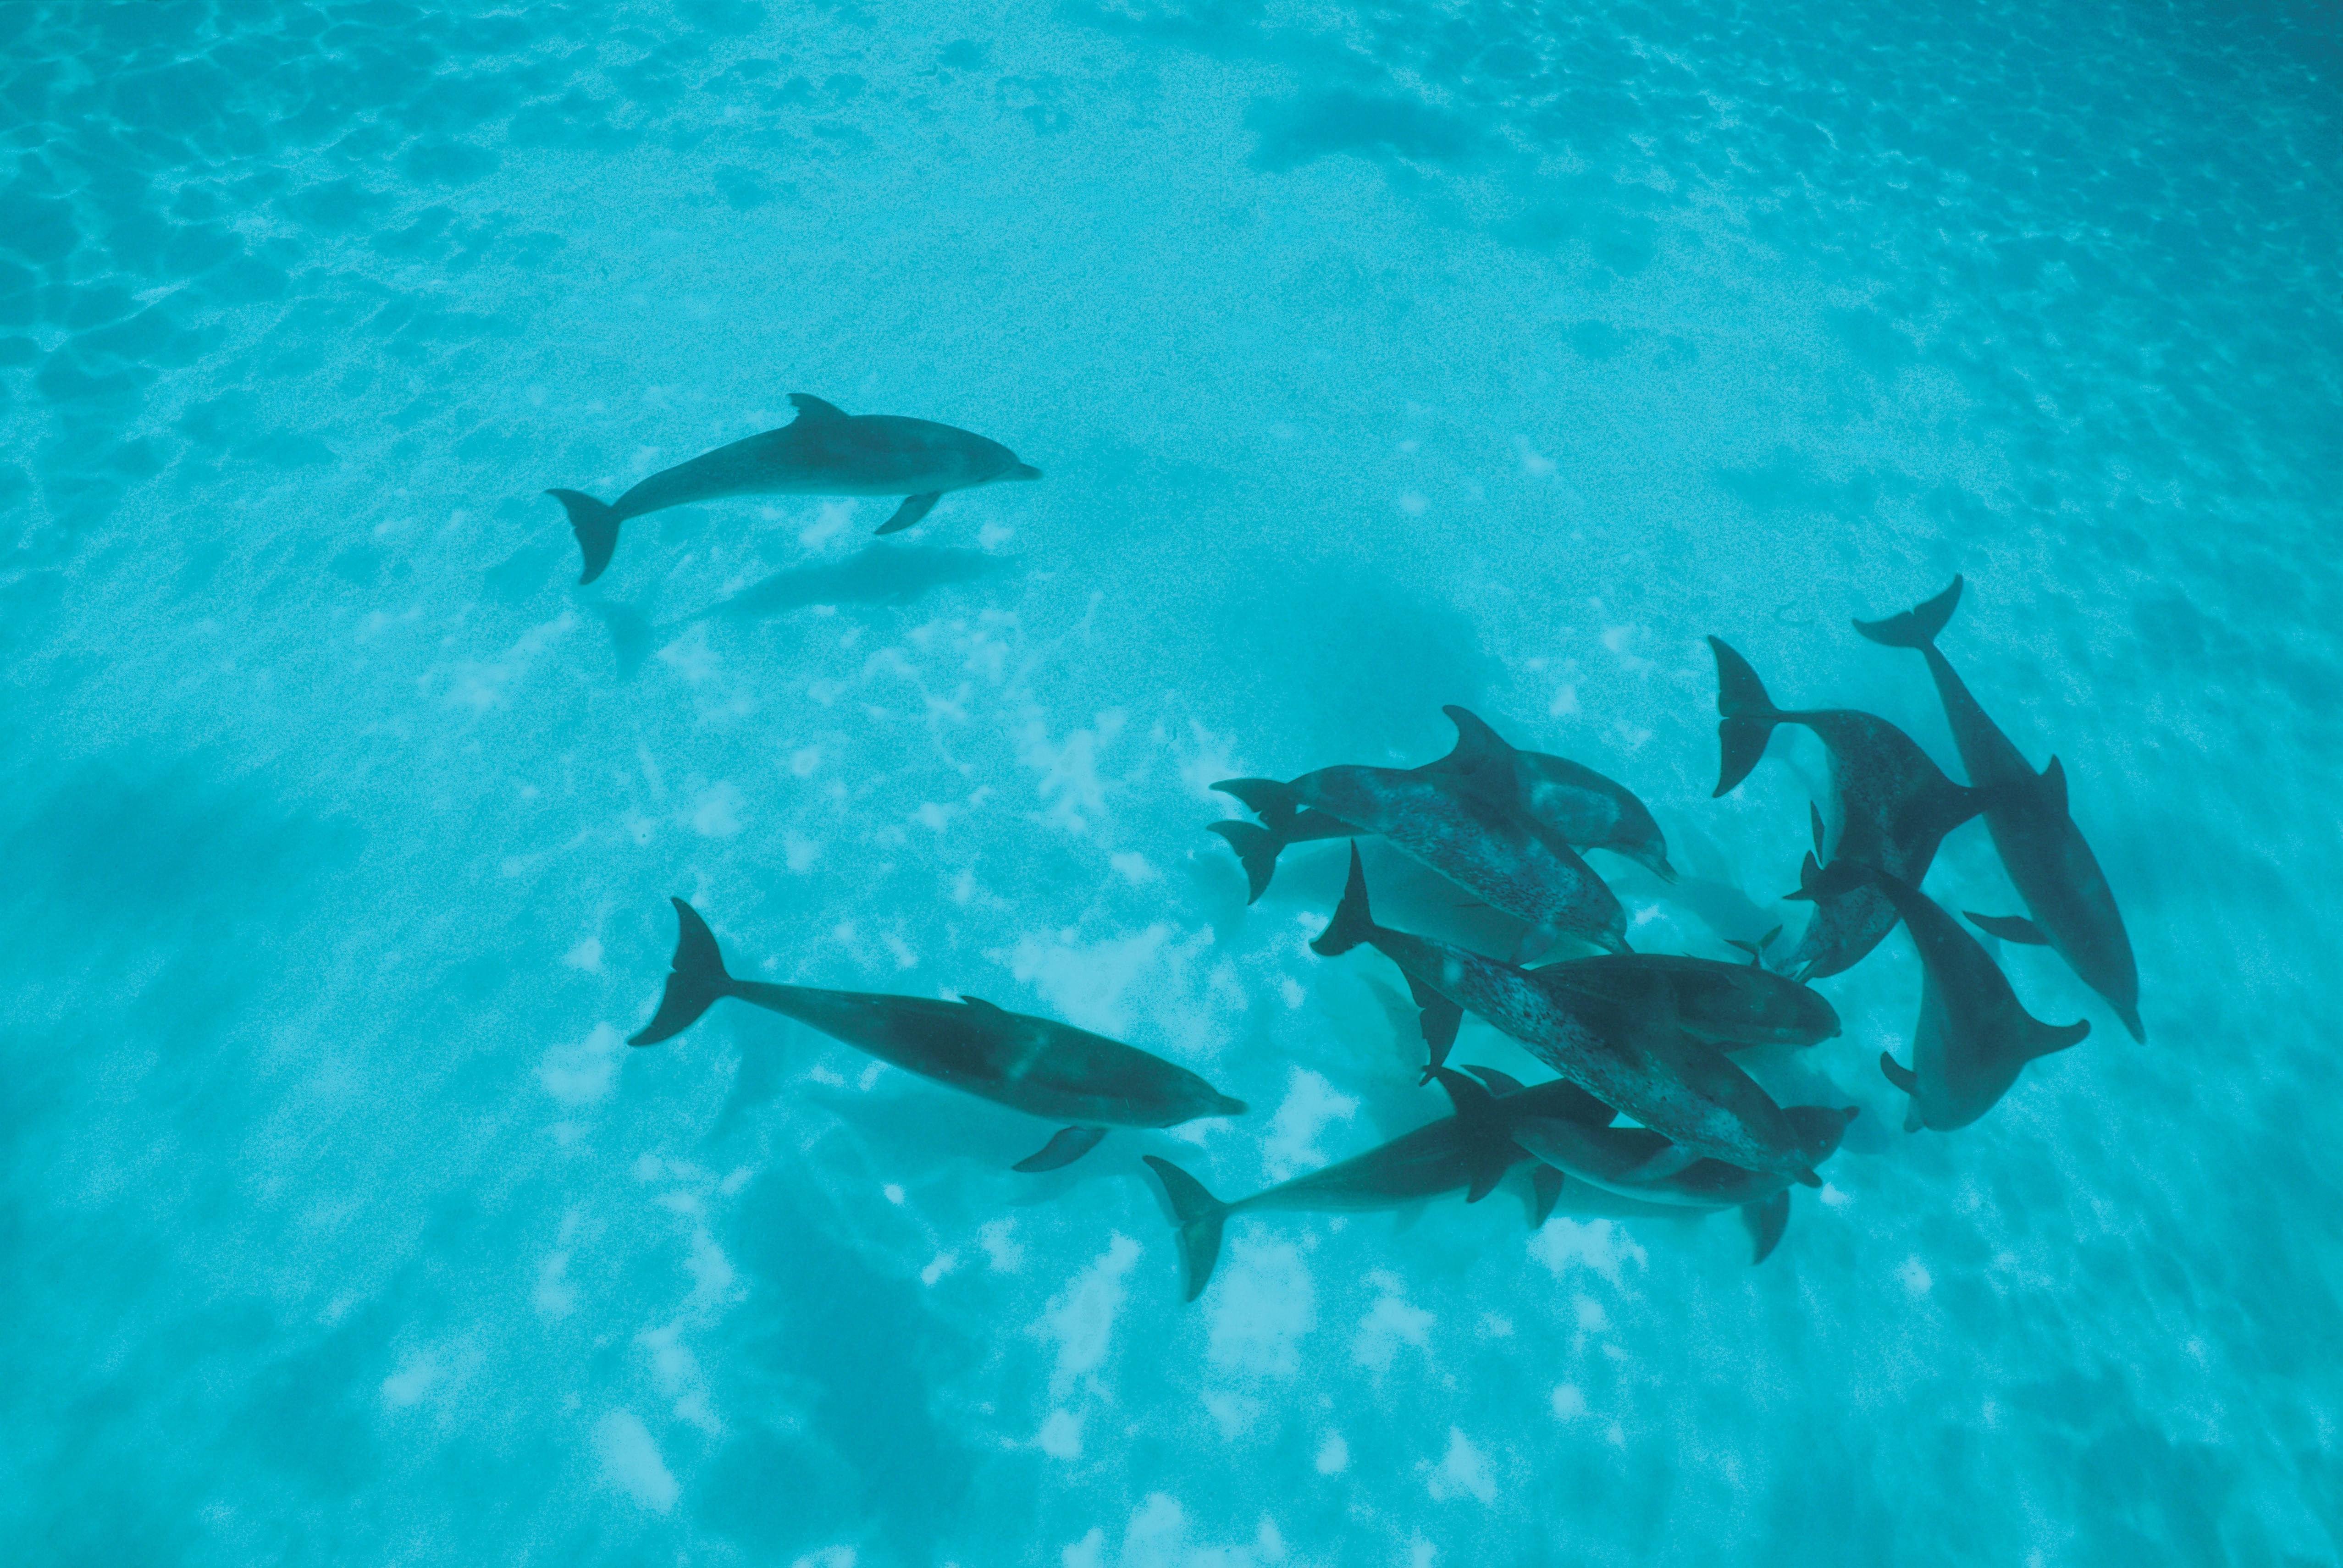 107330 download wallpaper Animals, Dolfins, Flock, Shallow Water, Shoal screensavers and pictures for free